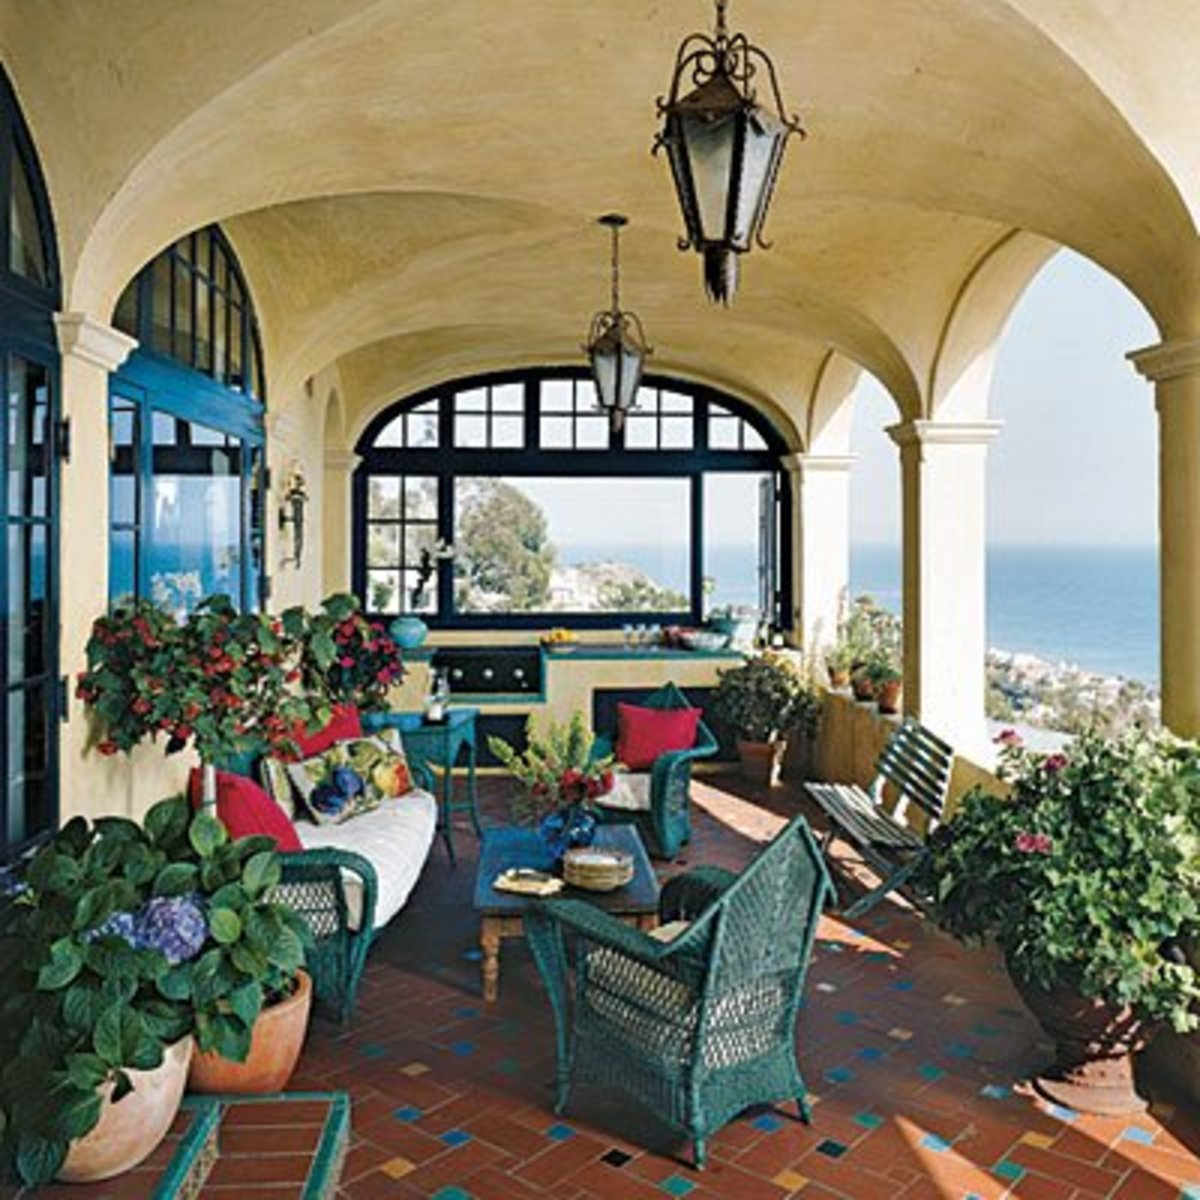 Mediterranean Patios, Pergolas, Stucco Terraces, Water